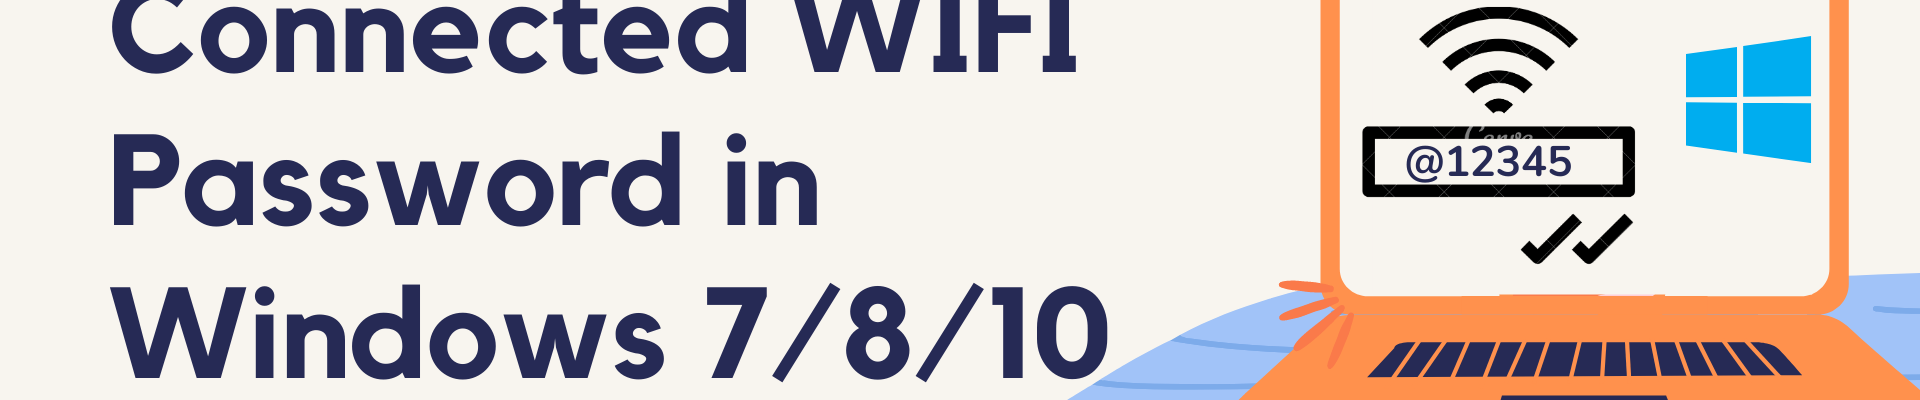 Find Connected WIFI password in Windows